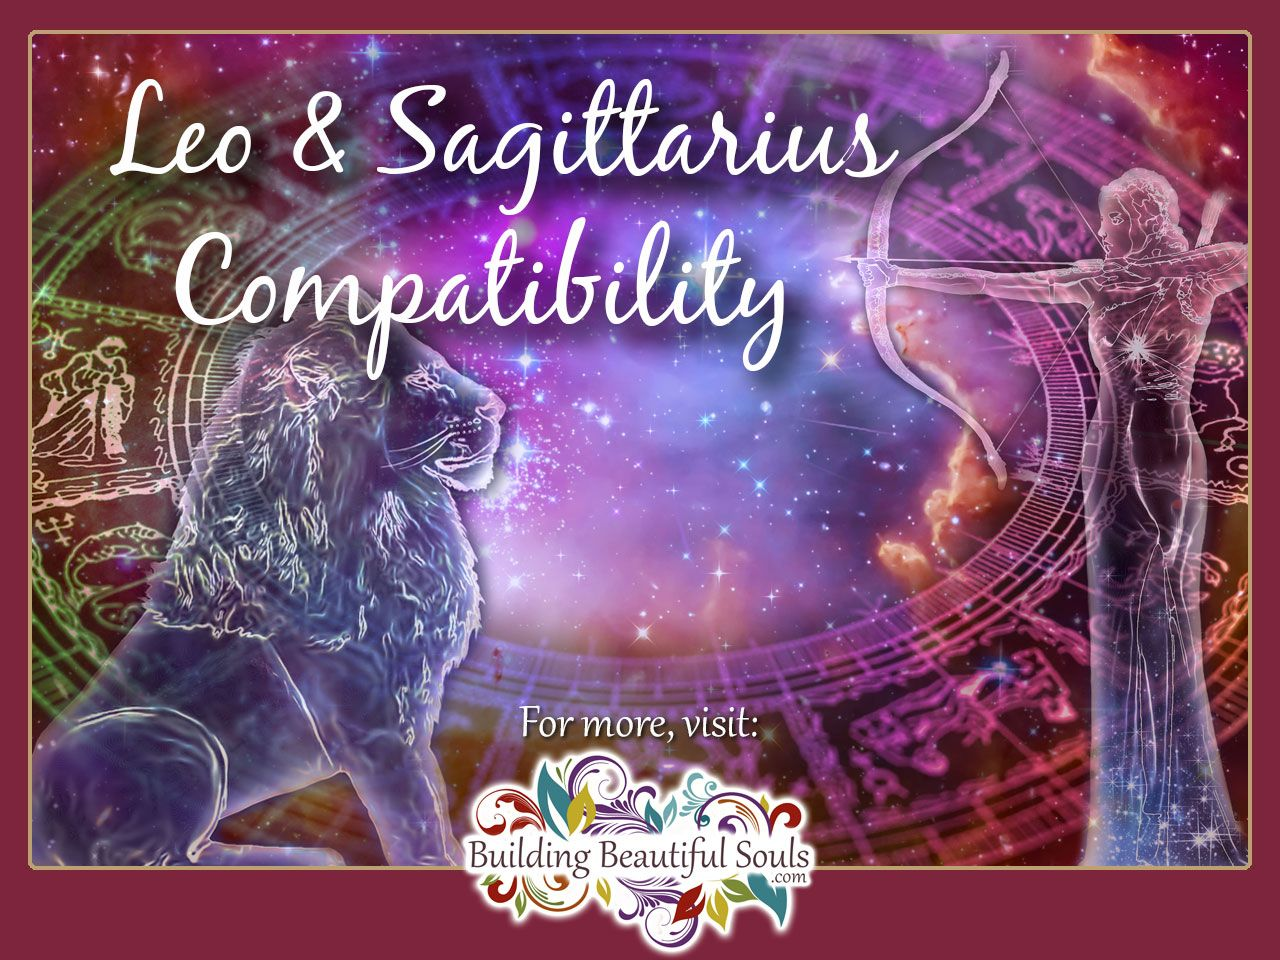 Leo and Sagittarius 1280x960